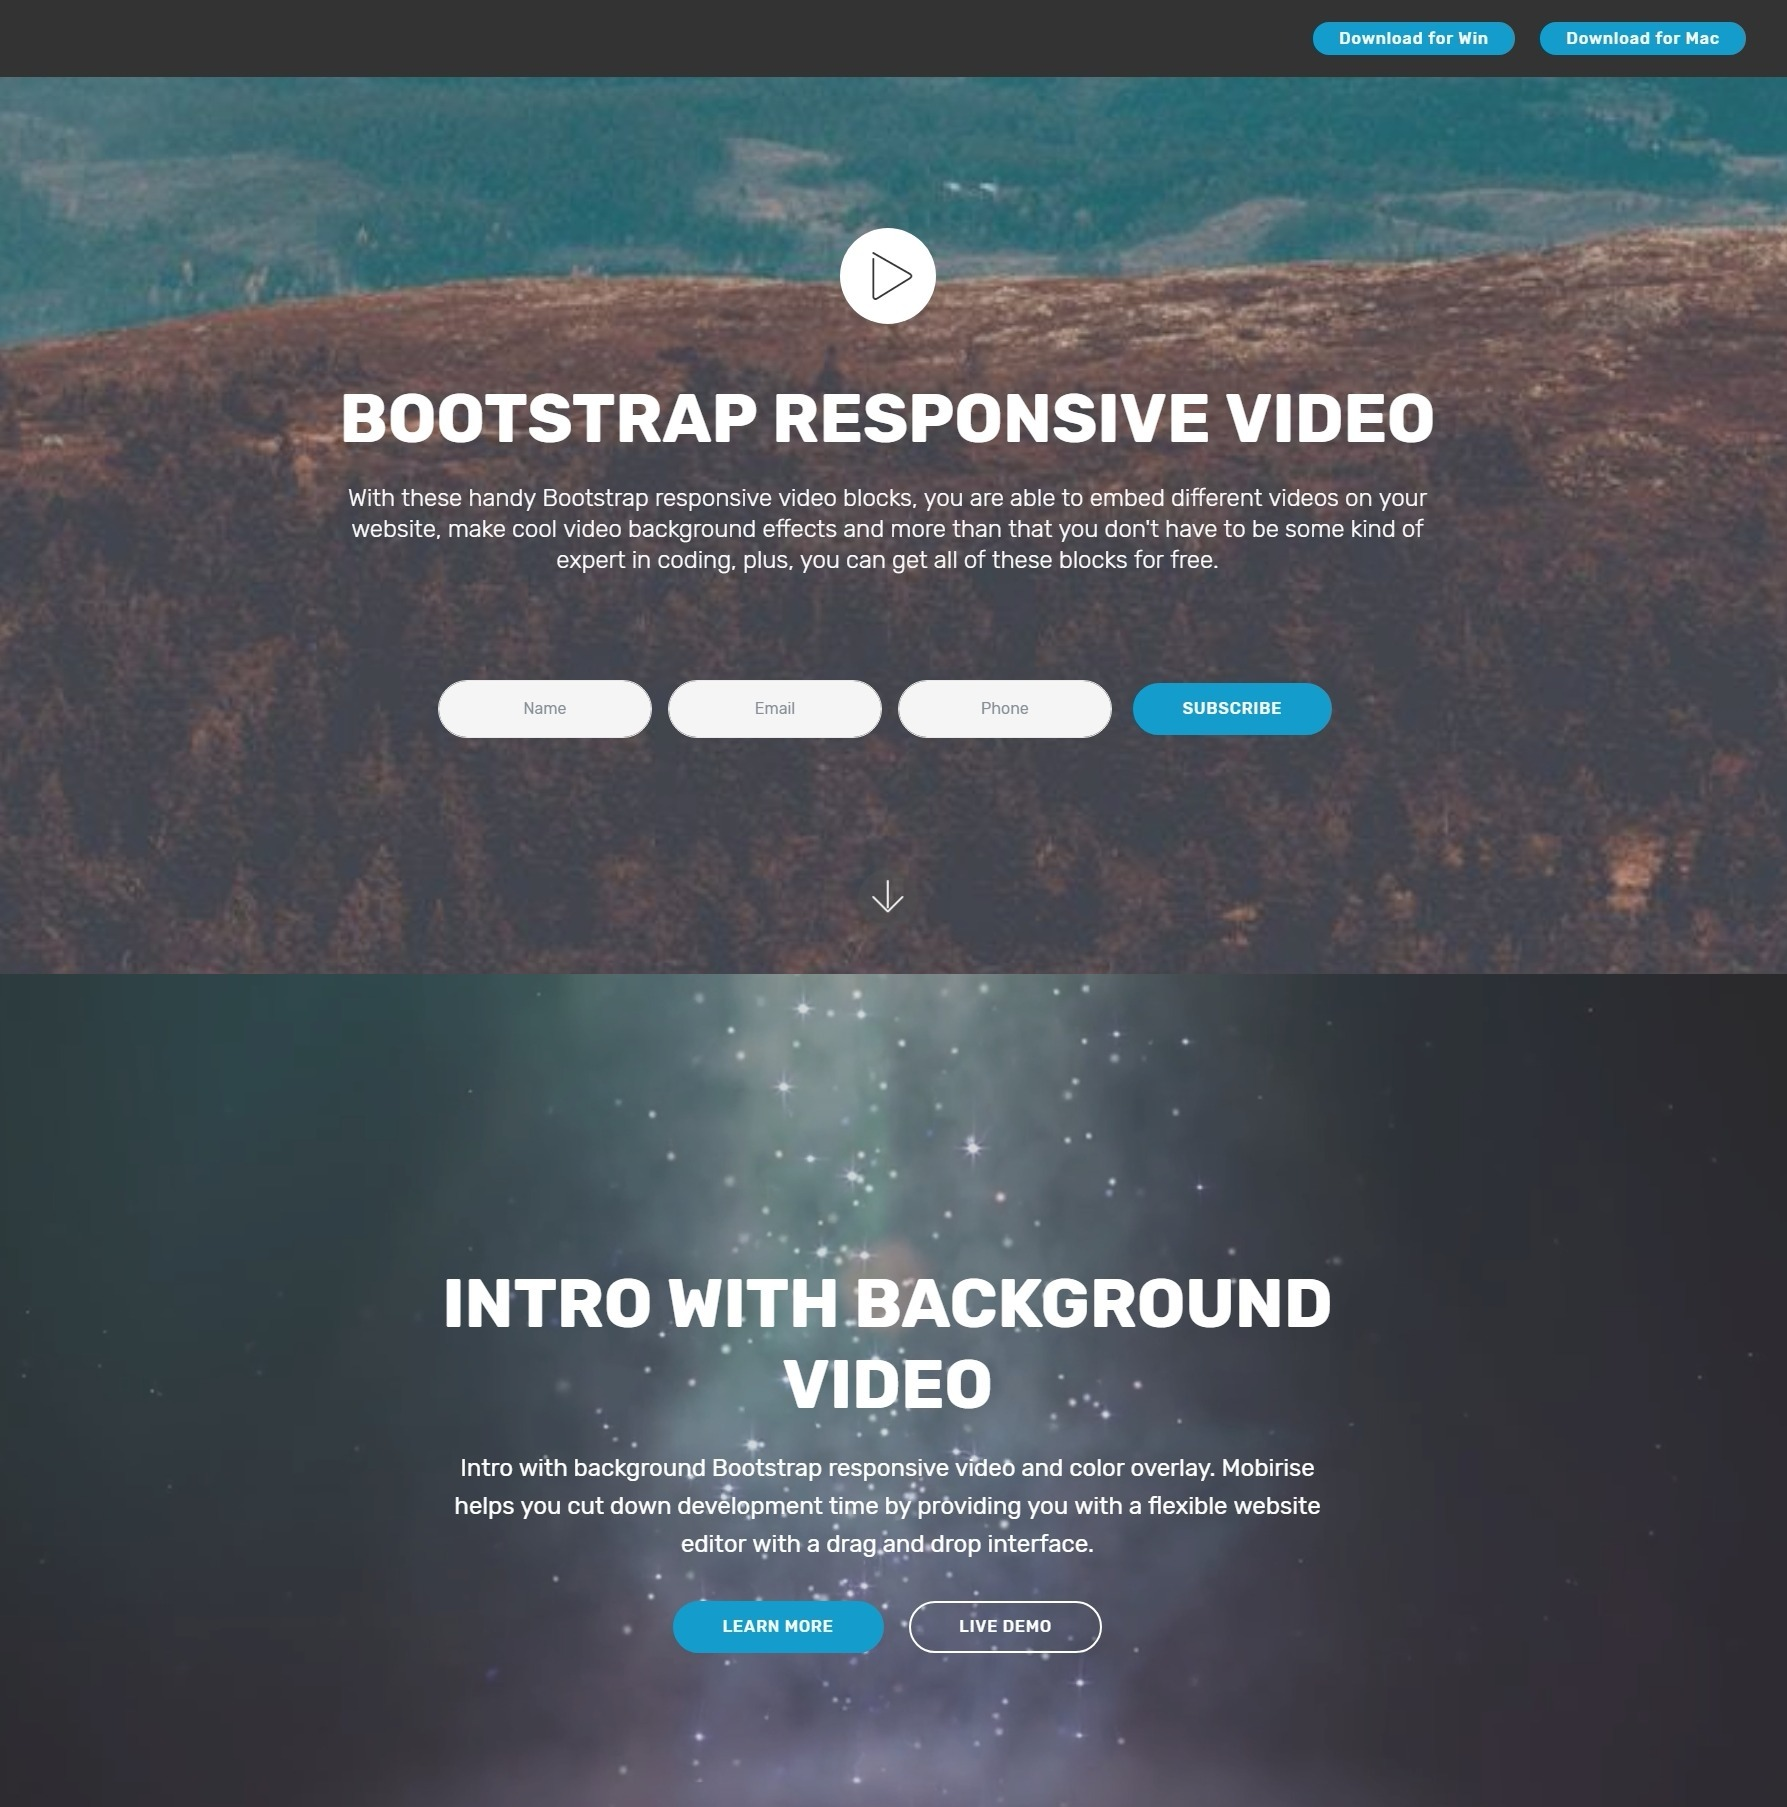 Impressive JavaScript Bootstrap Carousel Video Backgrounds and